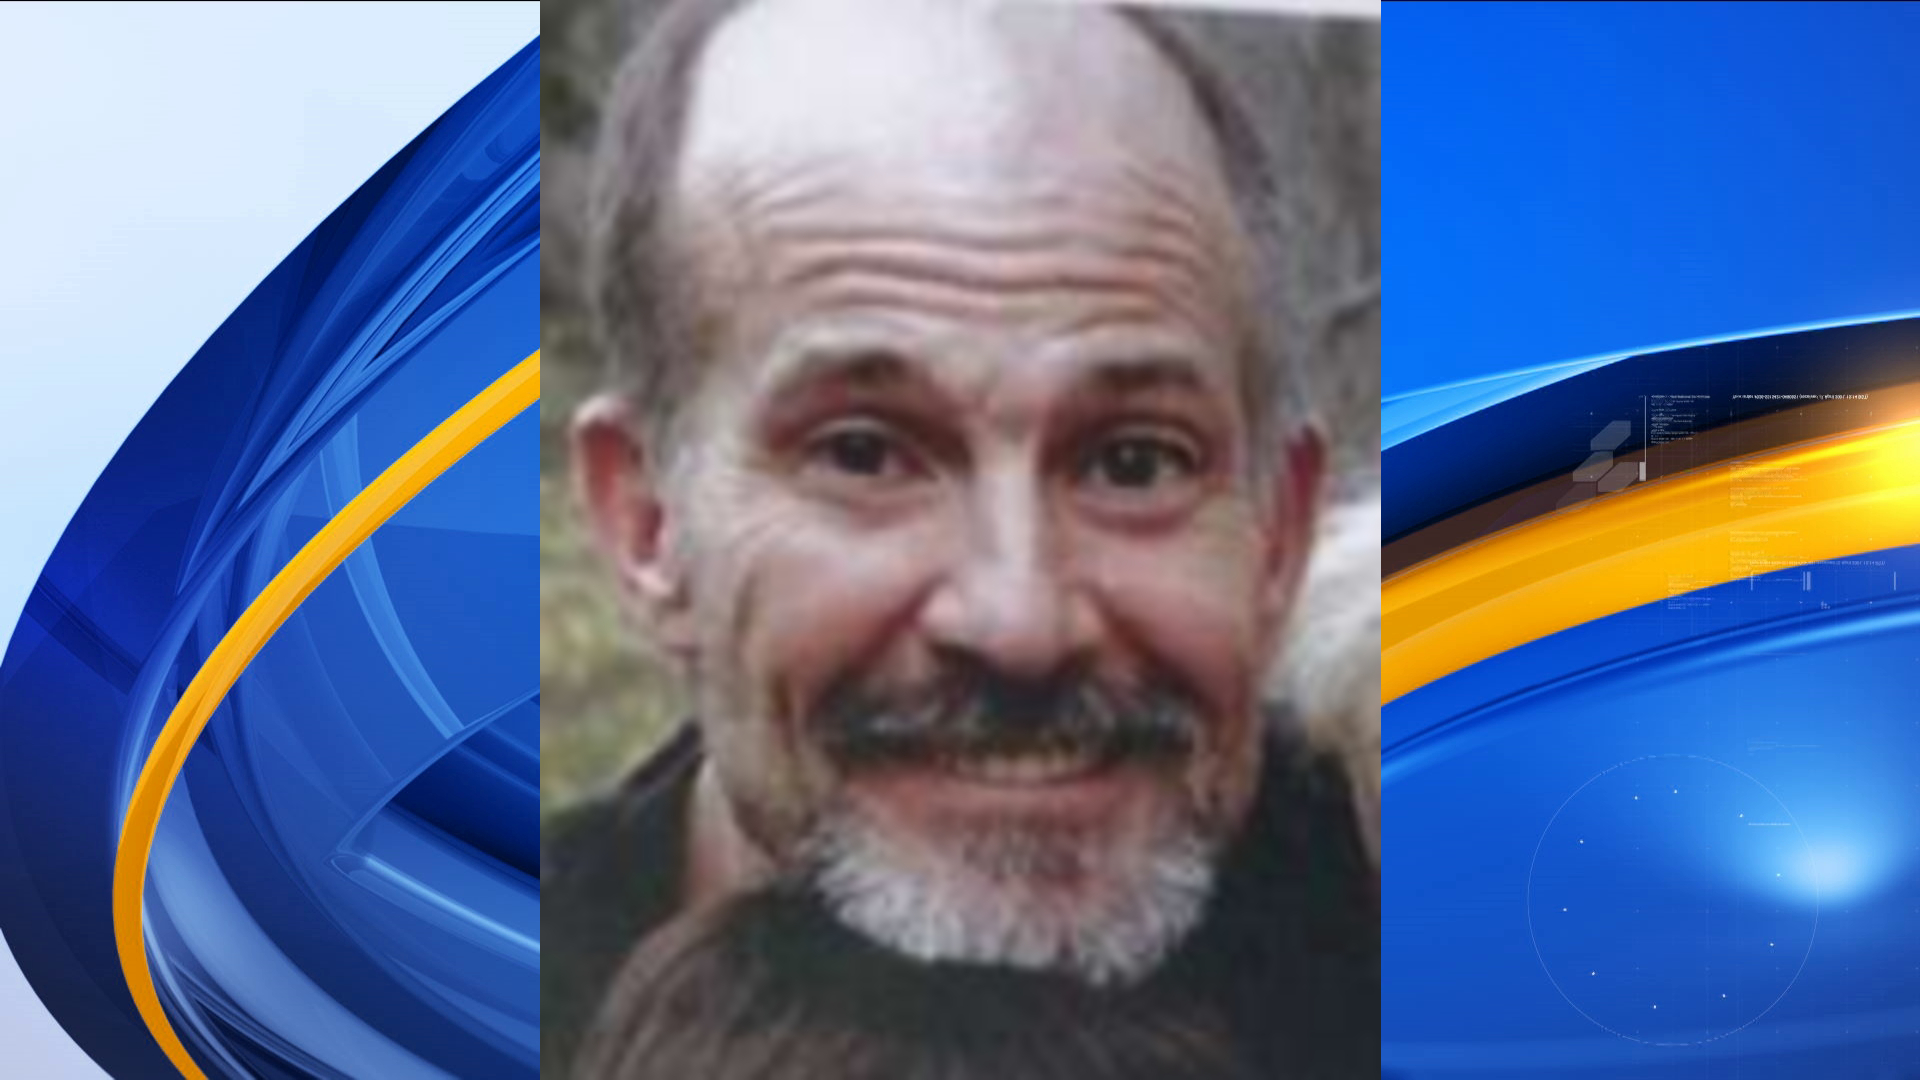 Huntsville Police are searching for James Robertson, missing since Thursday, August 12.